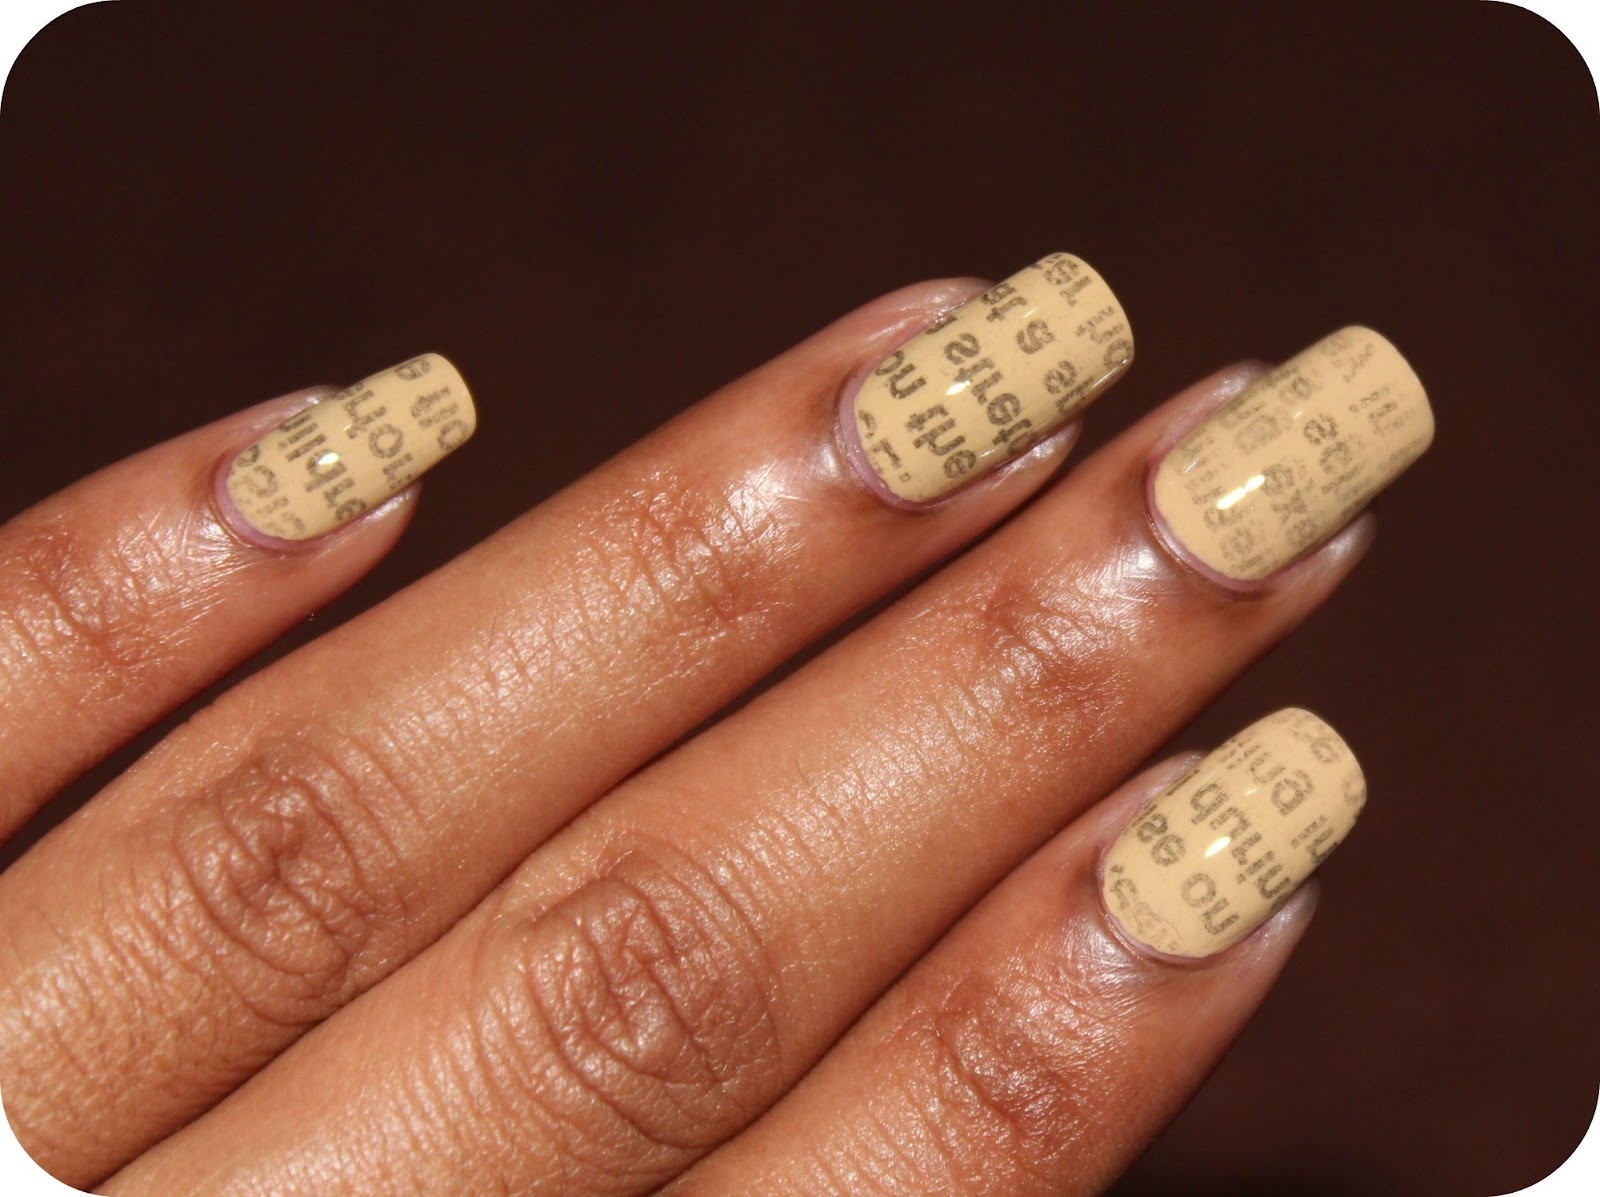 Guest Post! Newspaper Nails from Bellezza! - A Thing of Beauty